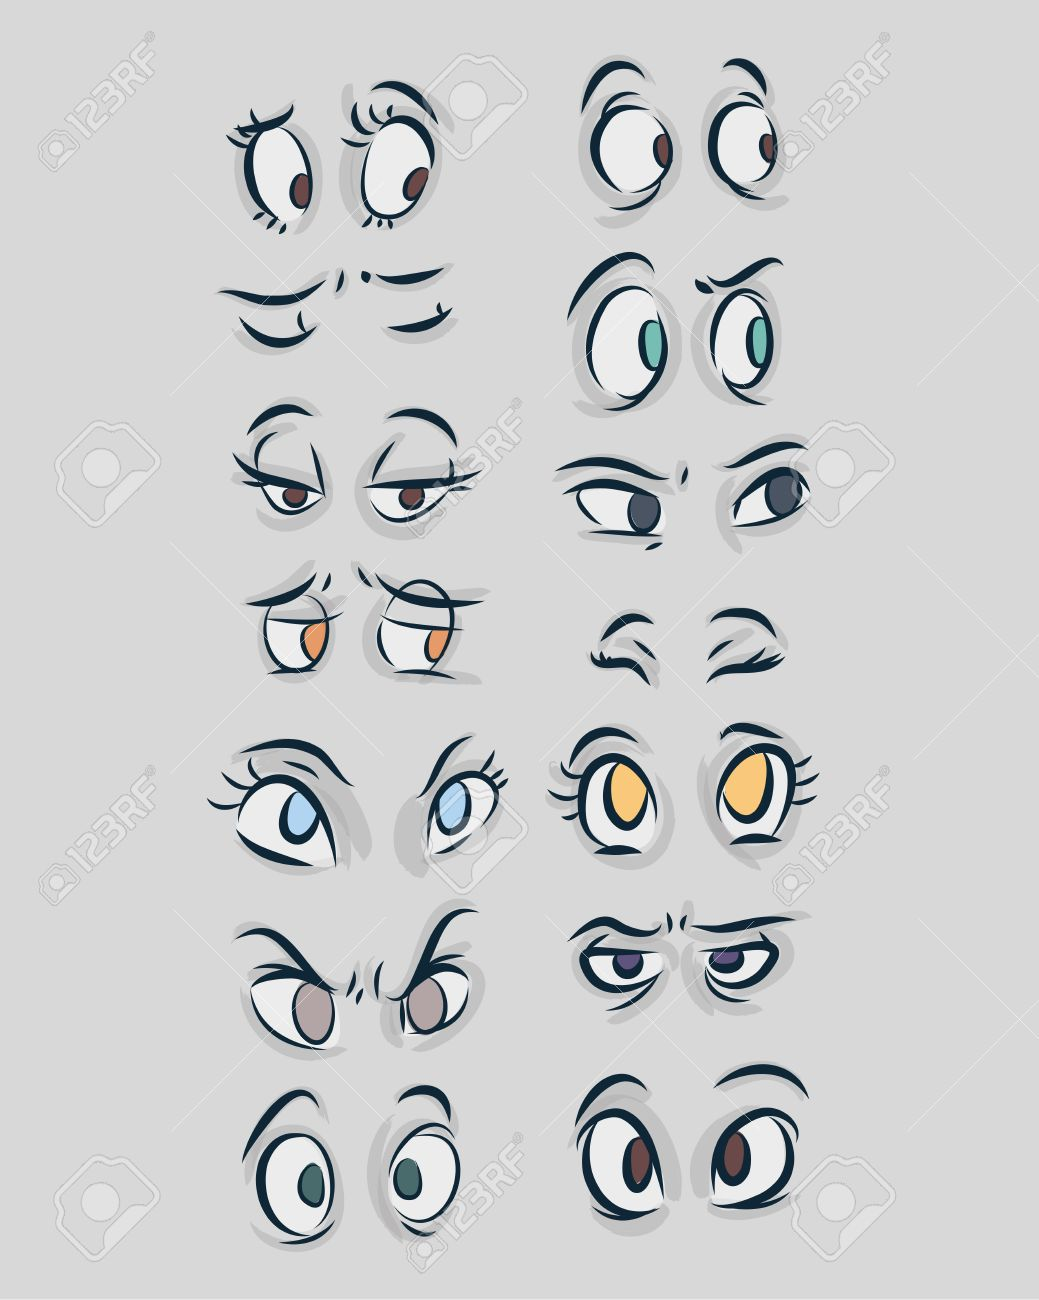 Hand drawn vector illustration or drawing of different types of eyes in a cartoon comic style